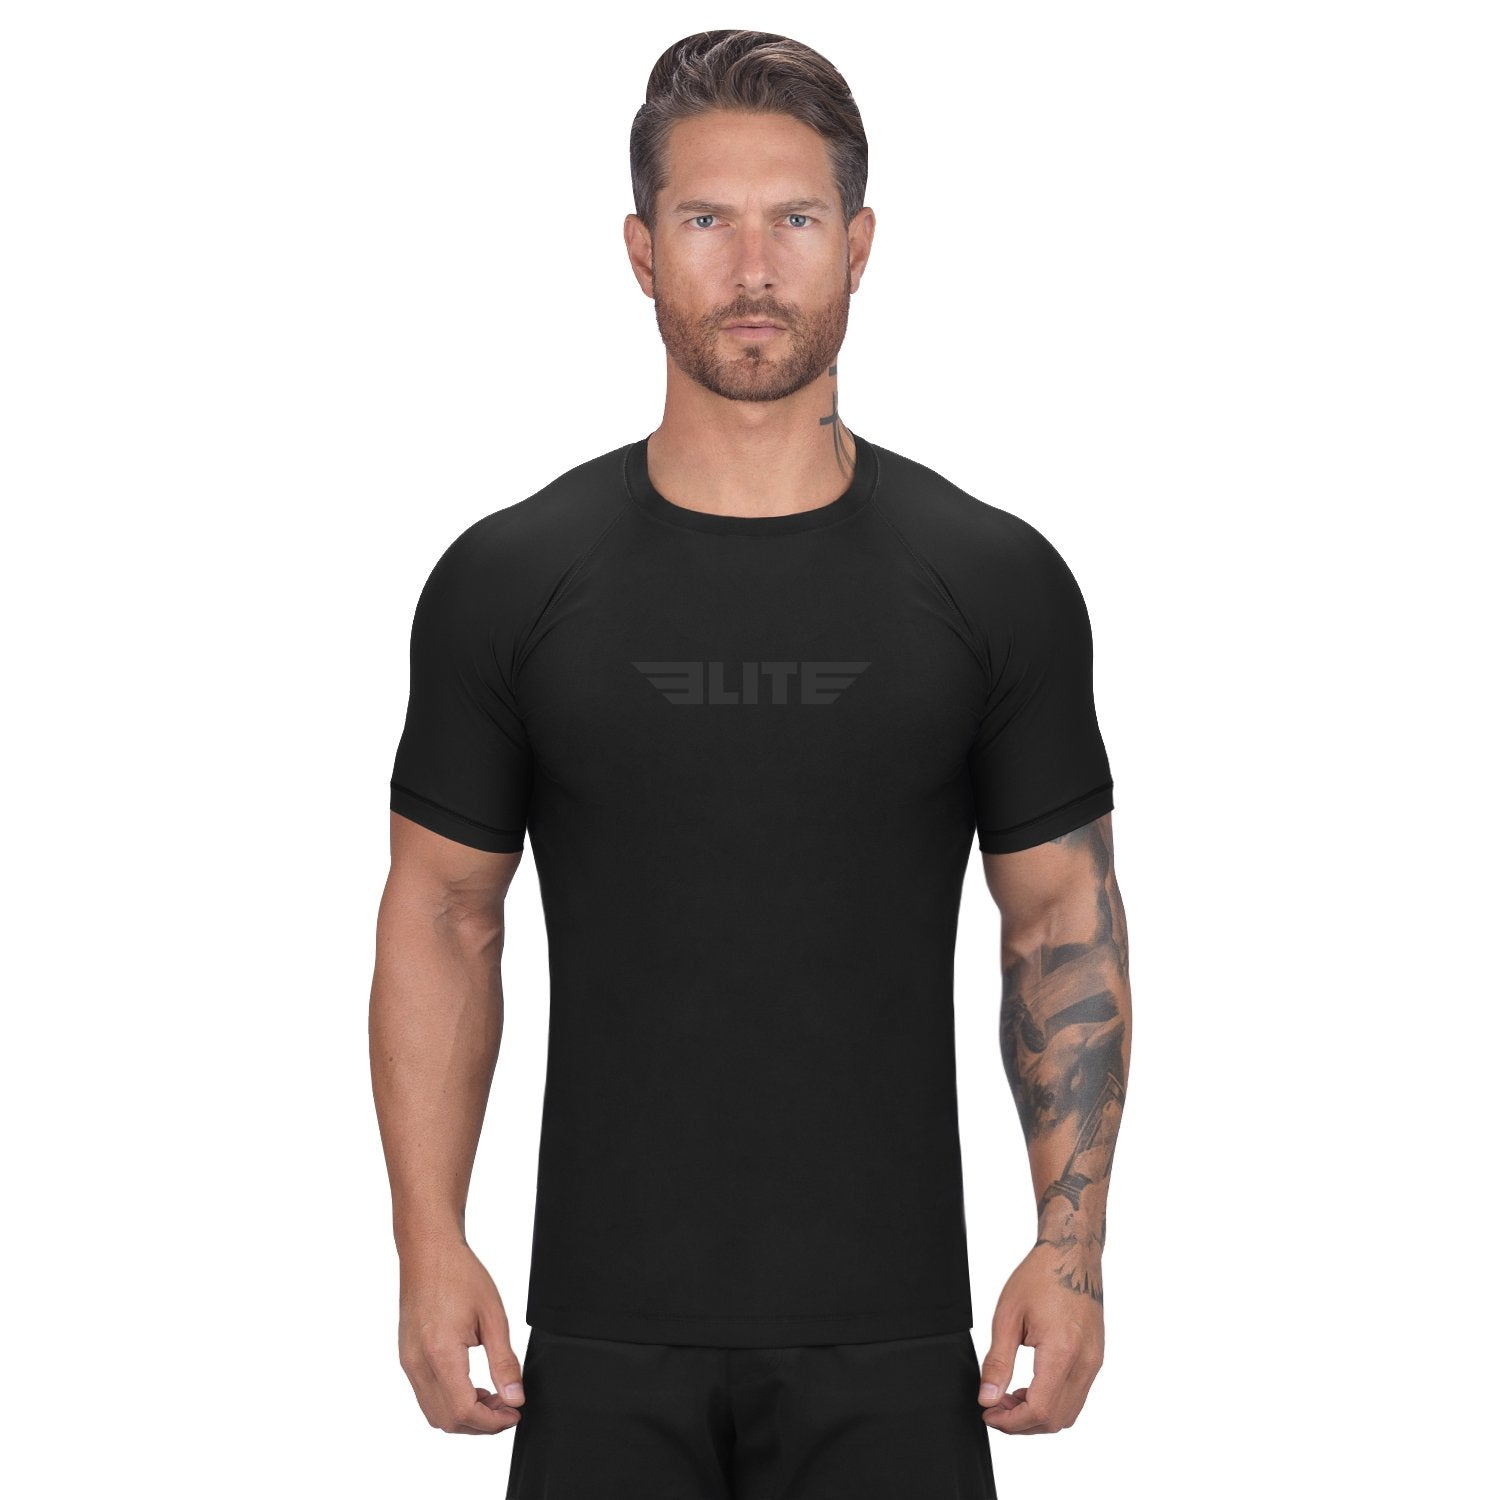 Elite Sports Standard Black Short Sleeve Judo Rash Guard